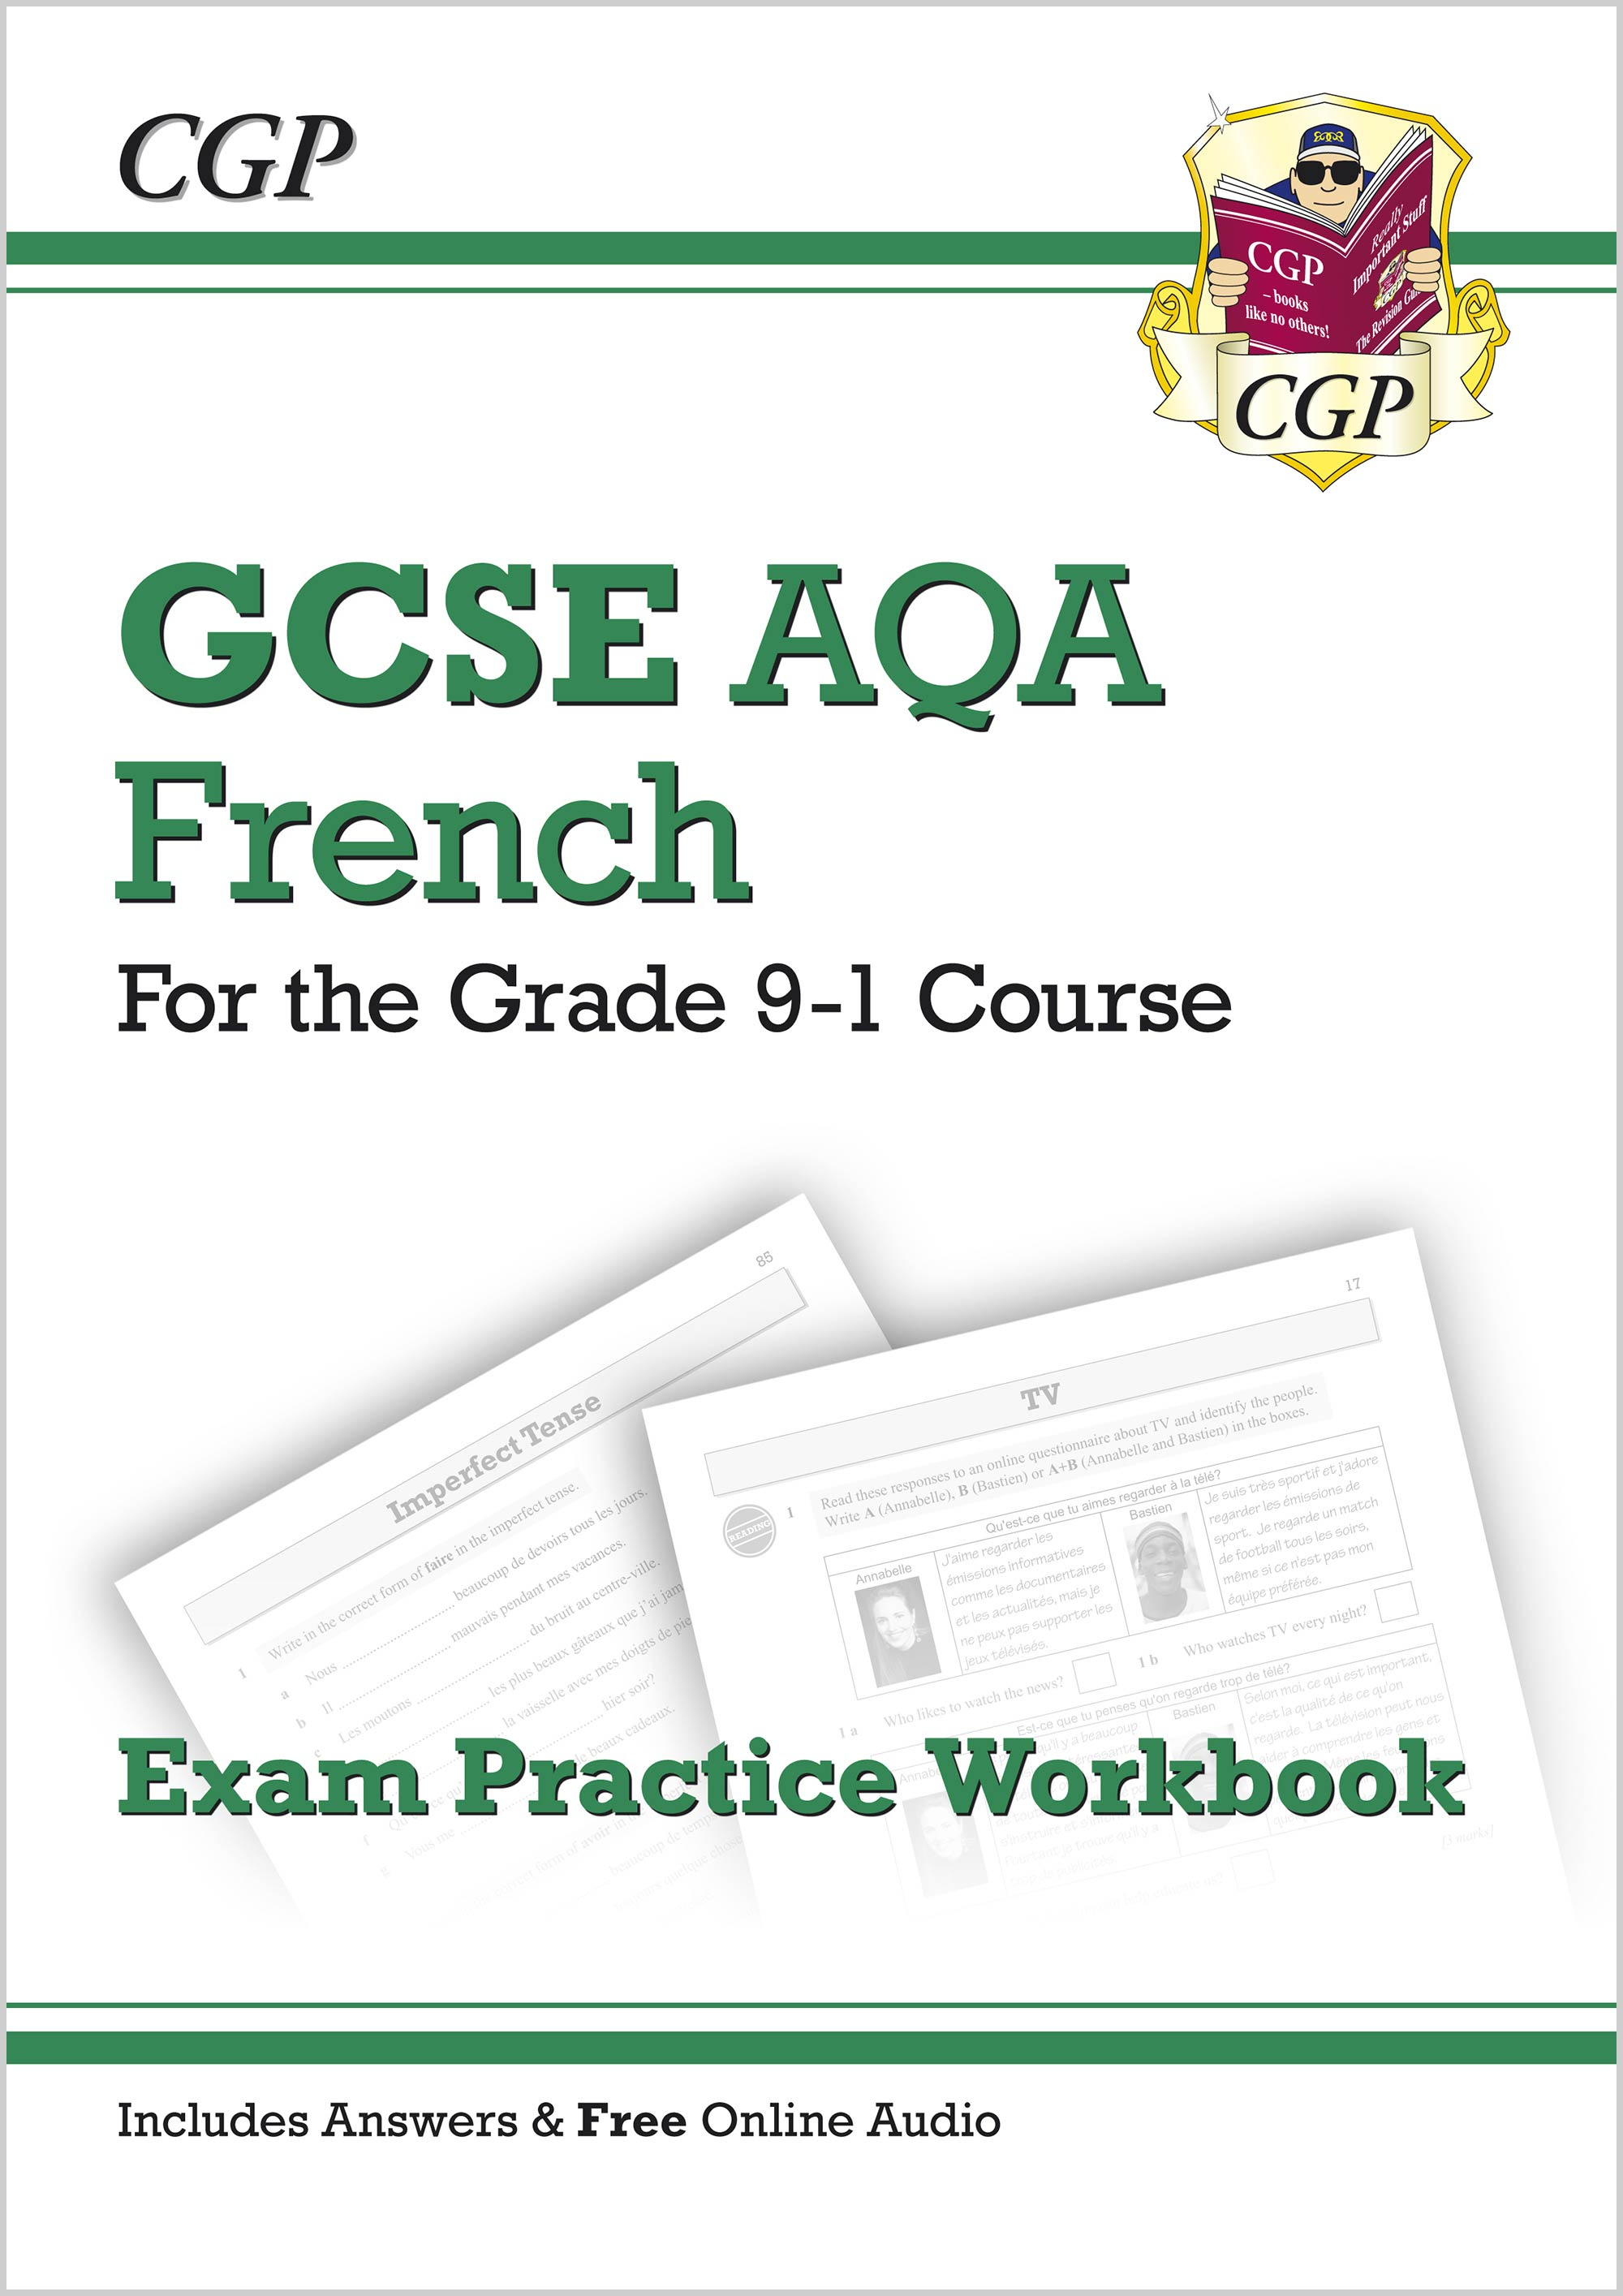 GCSE French AQA Exam Practice Workbook - for the Grade 9-1 Course (includes  Answers)